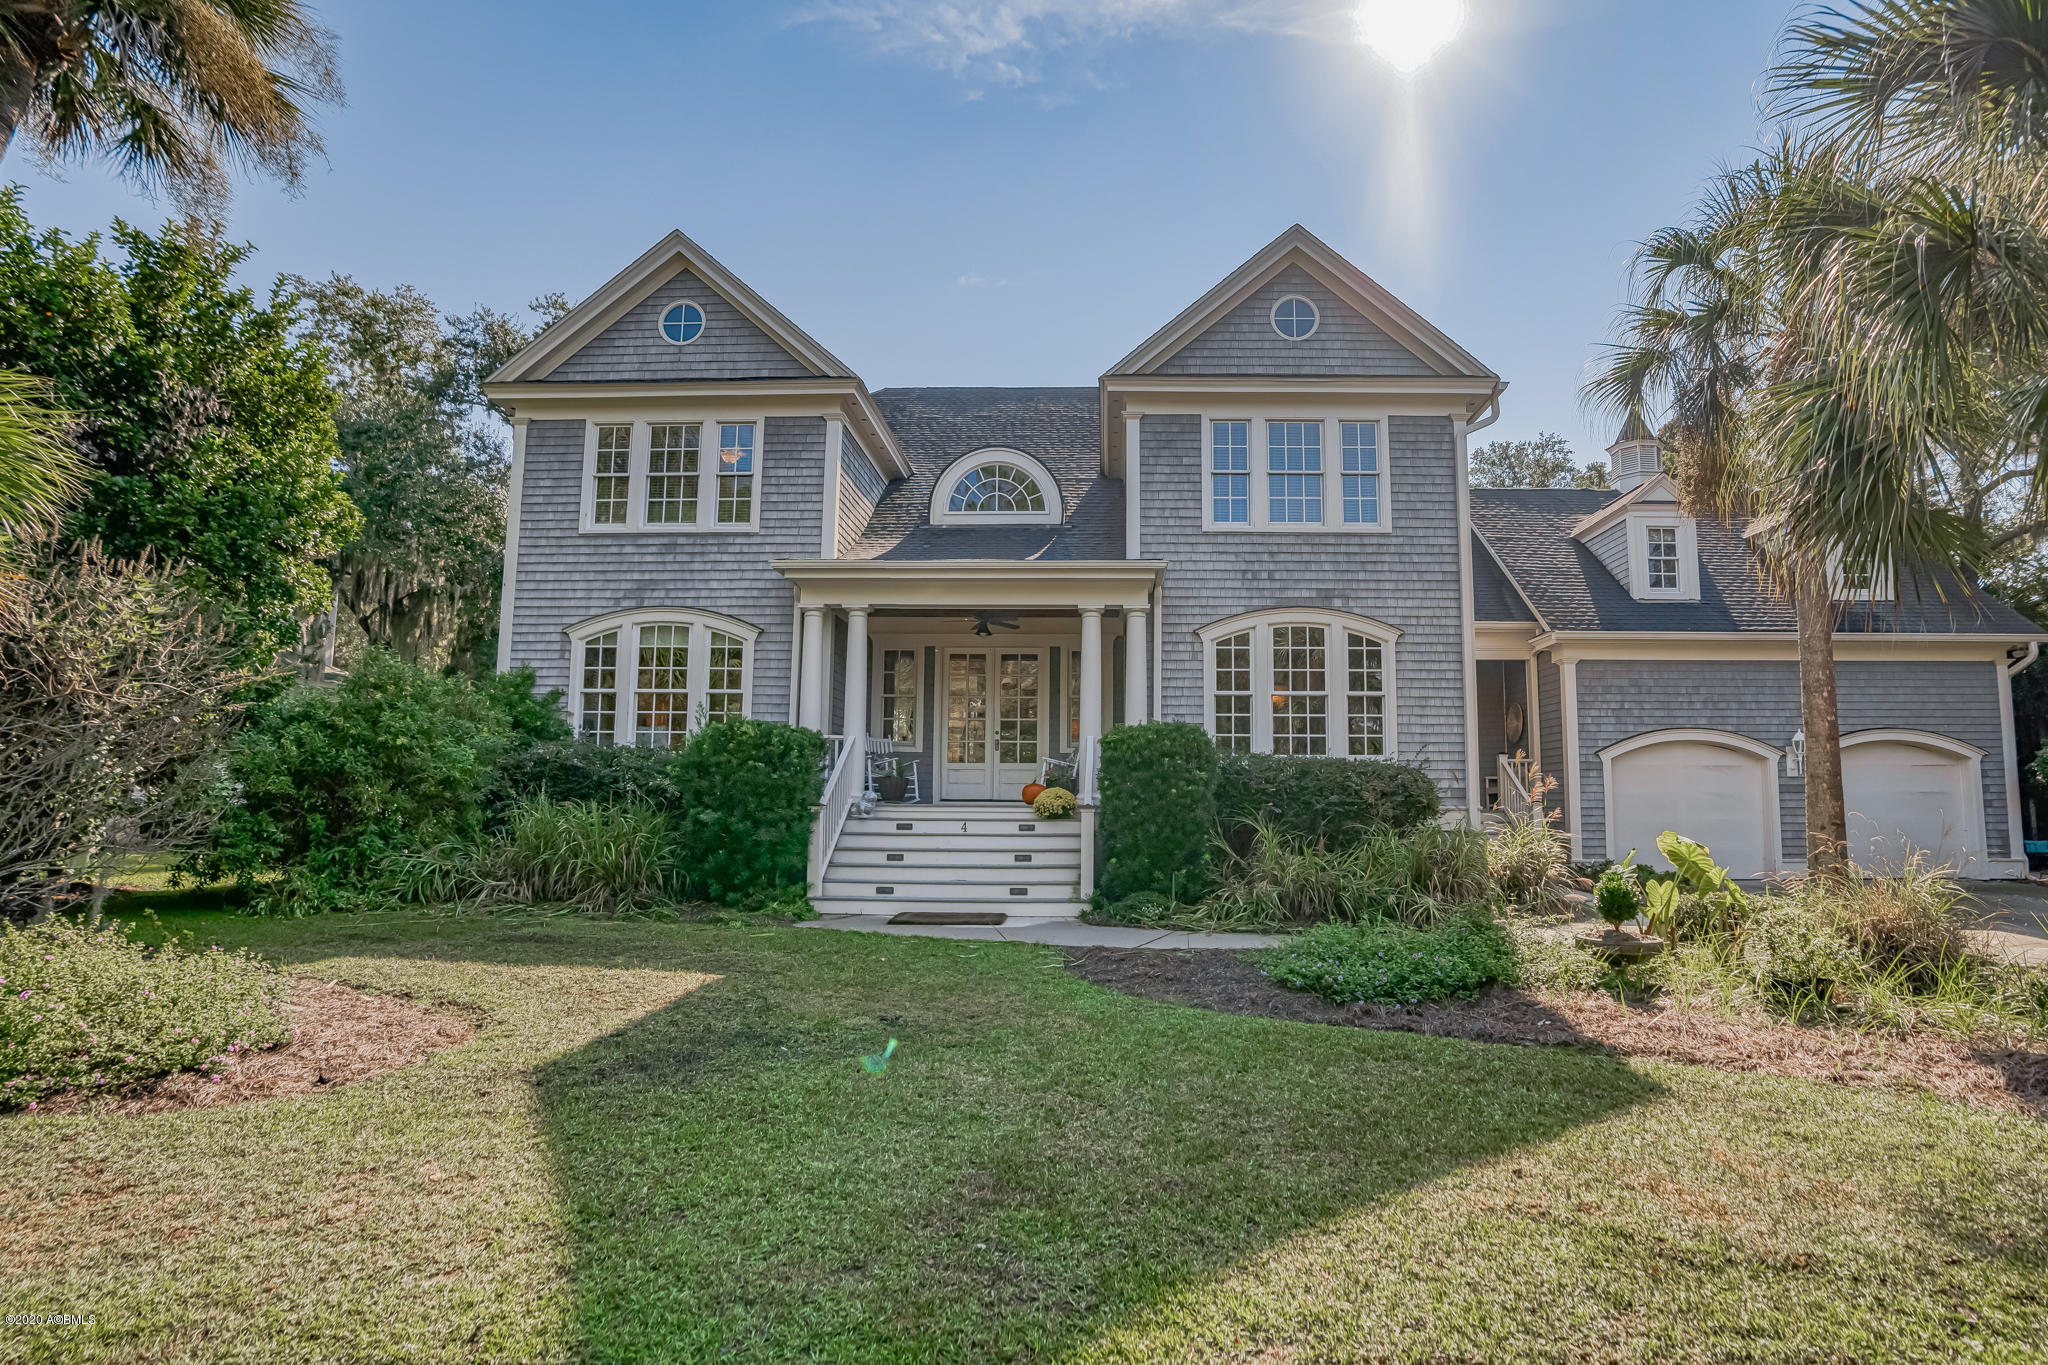 Photo of 4 Rush Street, Beaufort, SC 29907